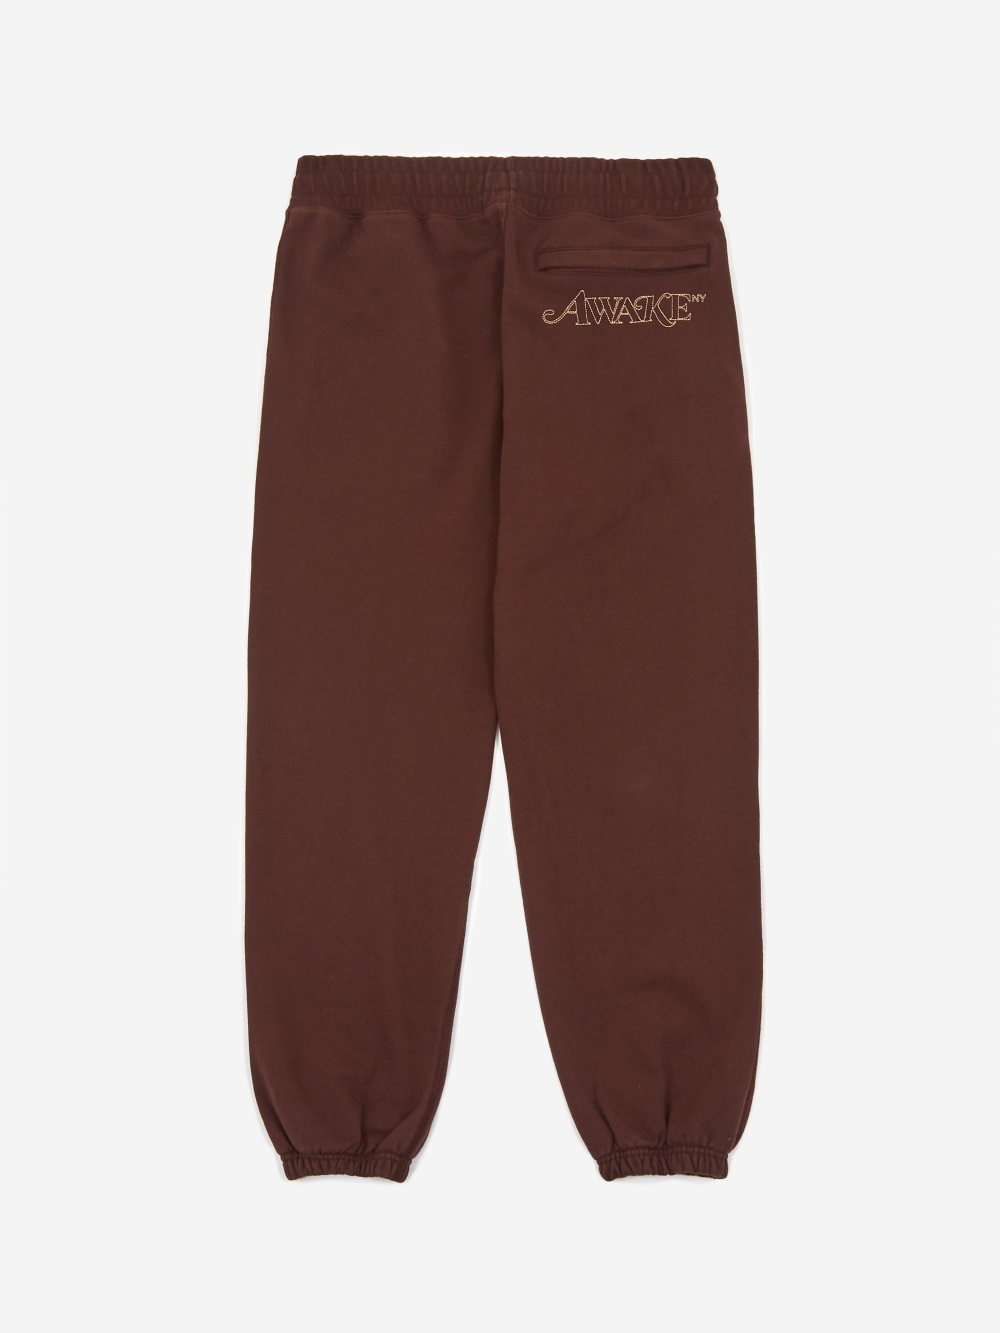 Awake Classic Outline Logo Paneled Embroidered Sweatpant Brown 1